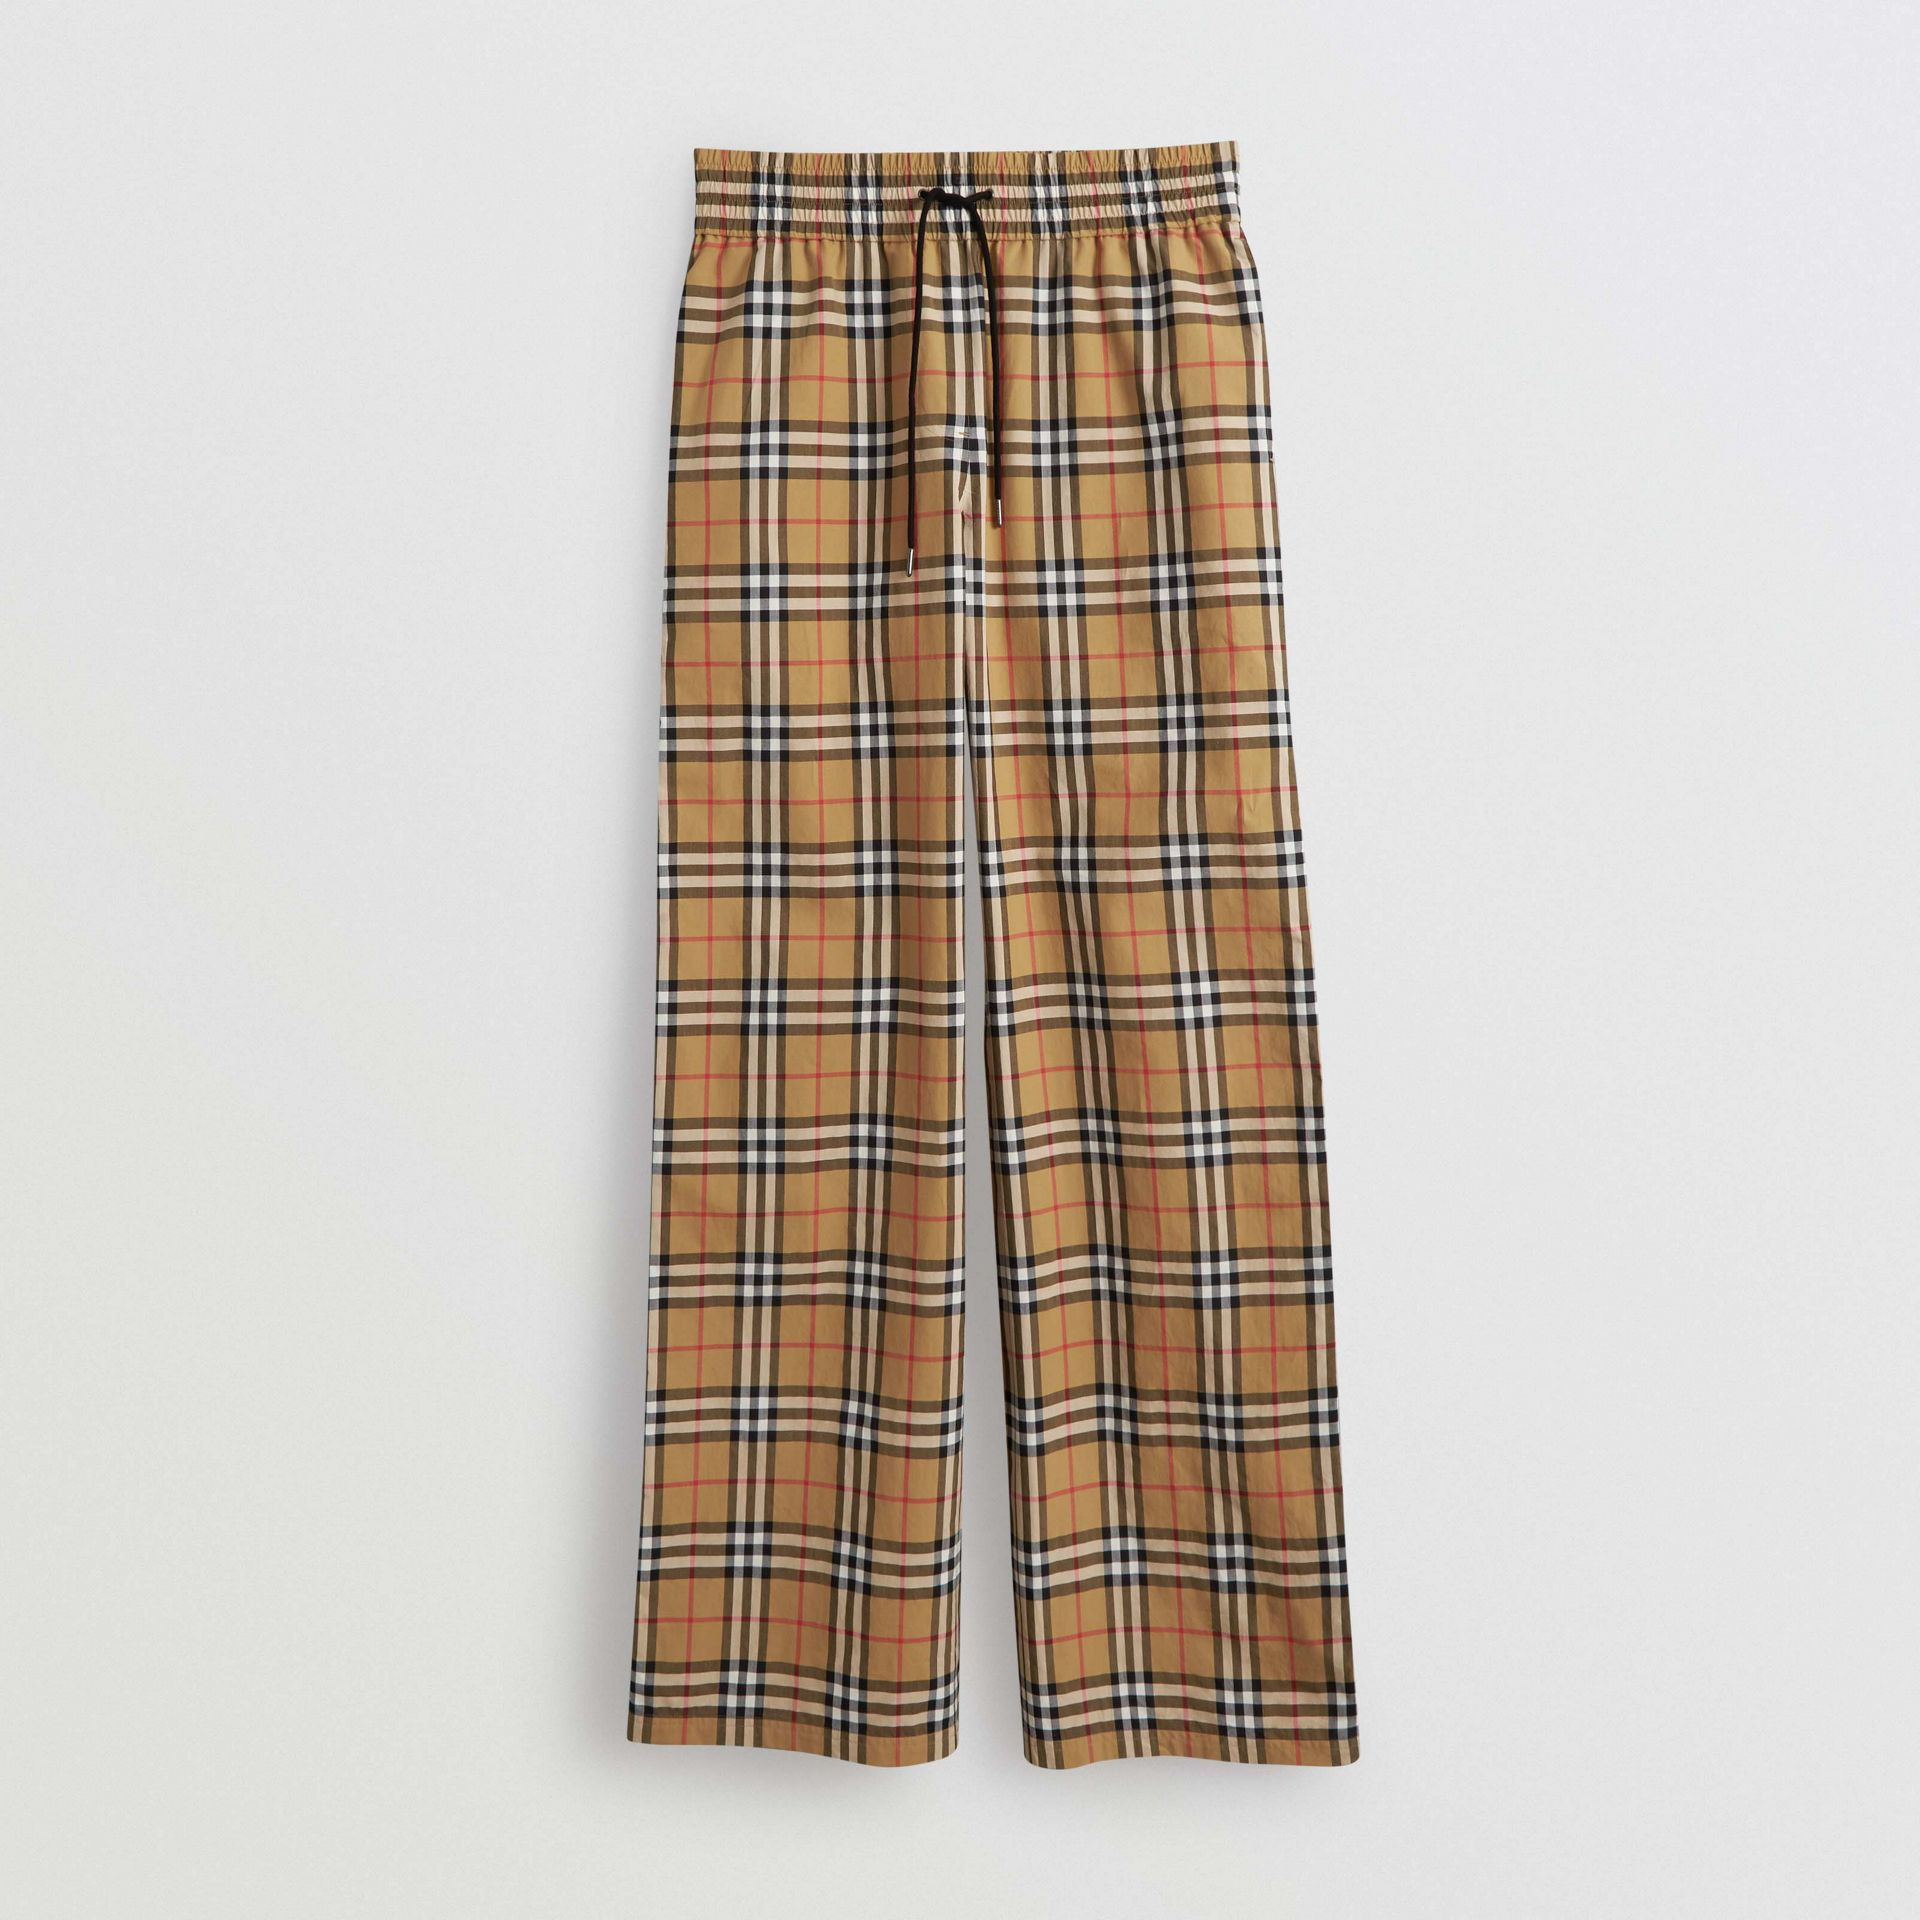 Satin Trim Vintage Check Cotton Trousers in Antique Yellow - Women | Burberry - gallery image 3